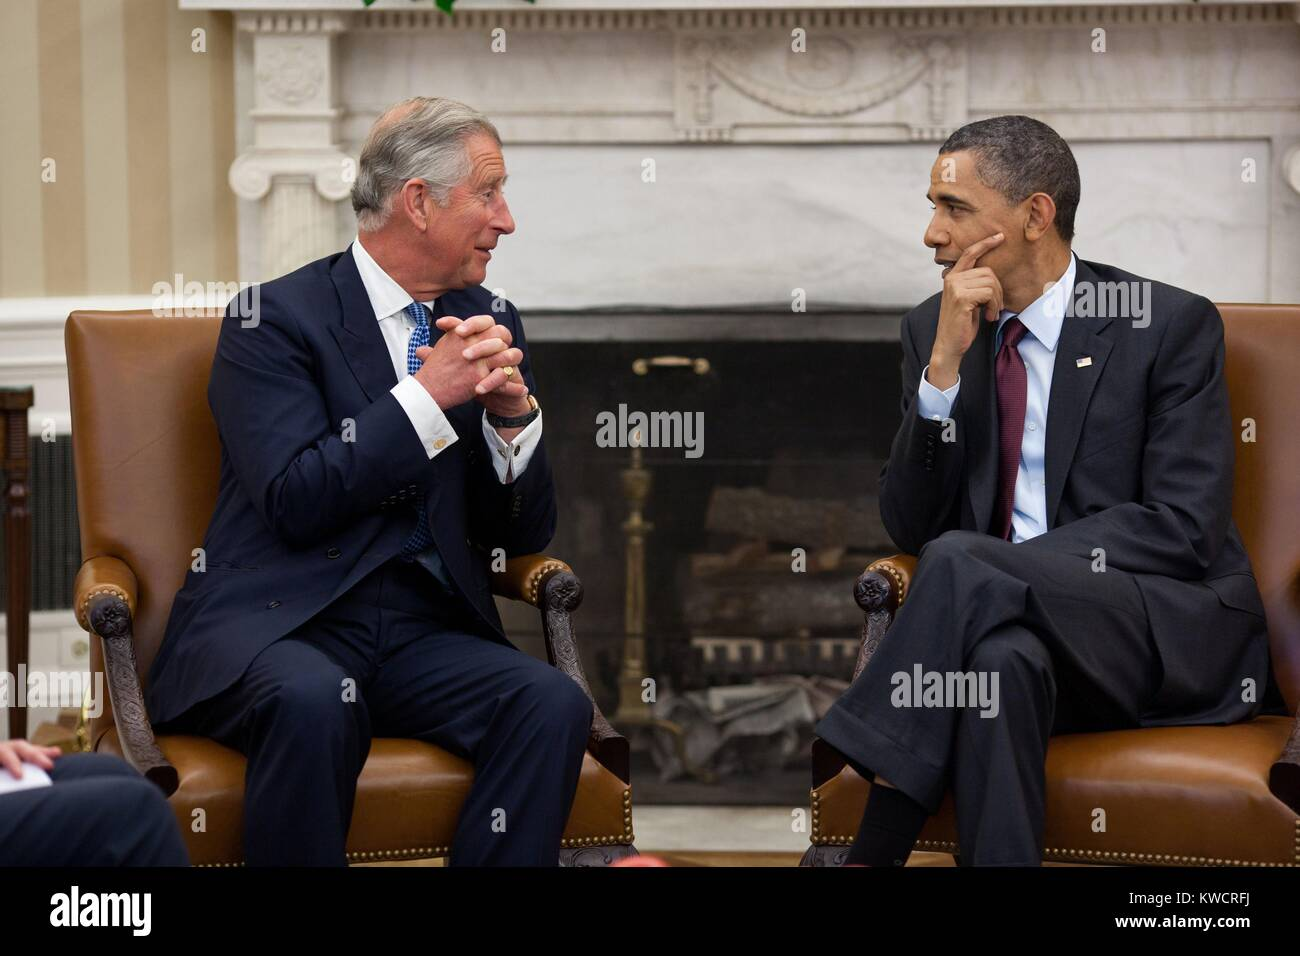 President Barack Obama meets with Prince Charles, Prince of Wales, in the Oval Office, May 4, 2011. (BSLOC_2015 - Stock Image